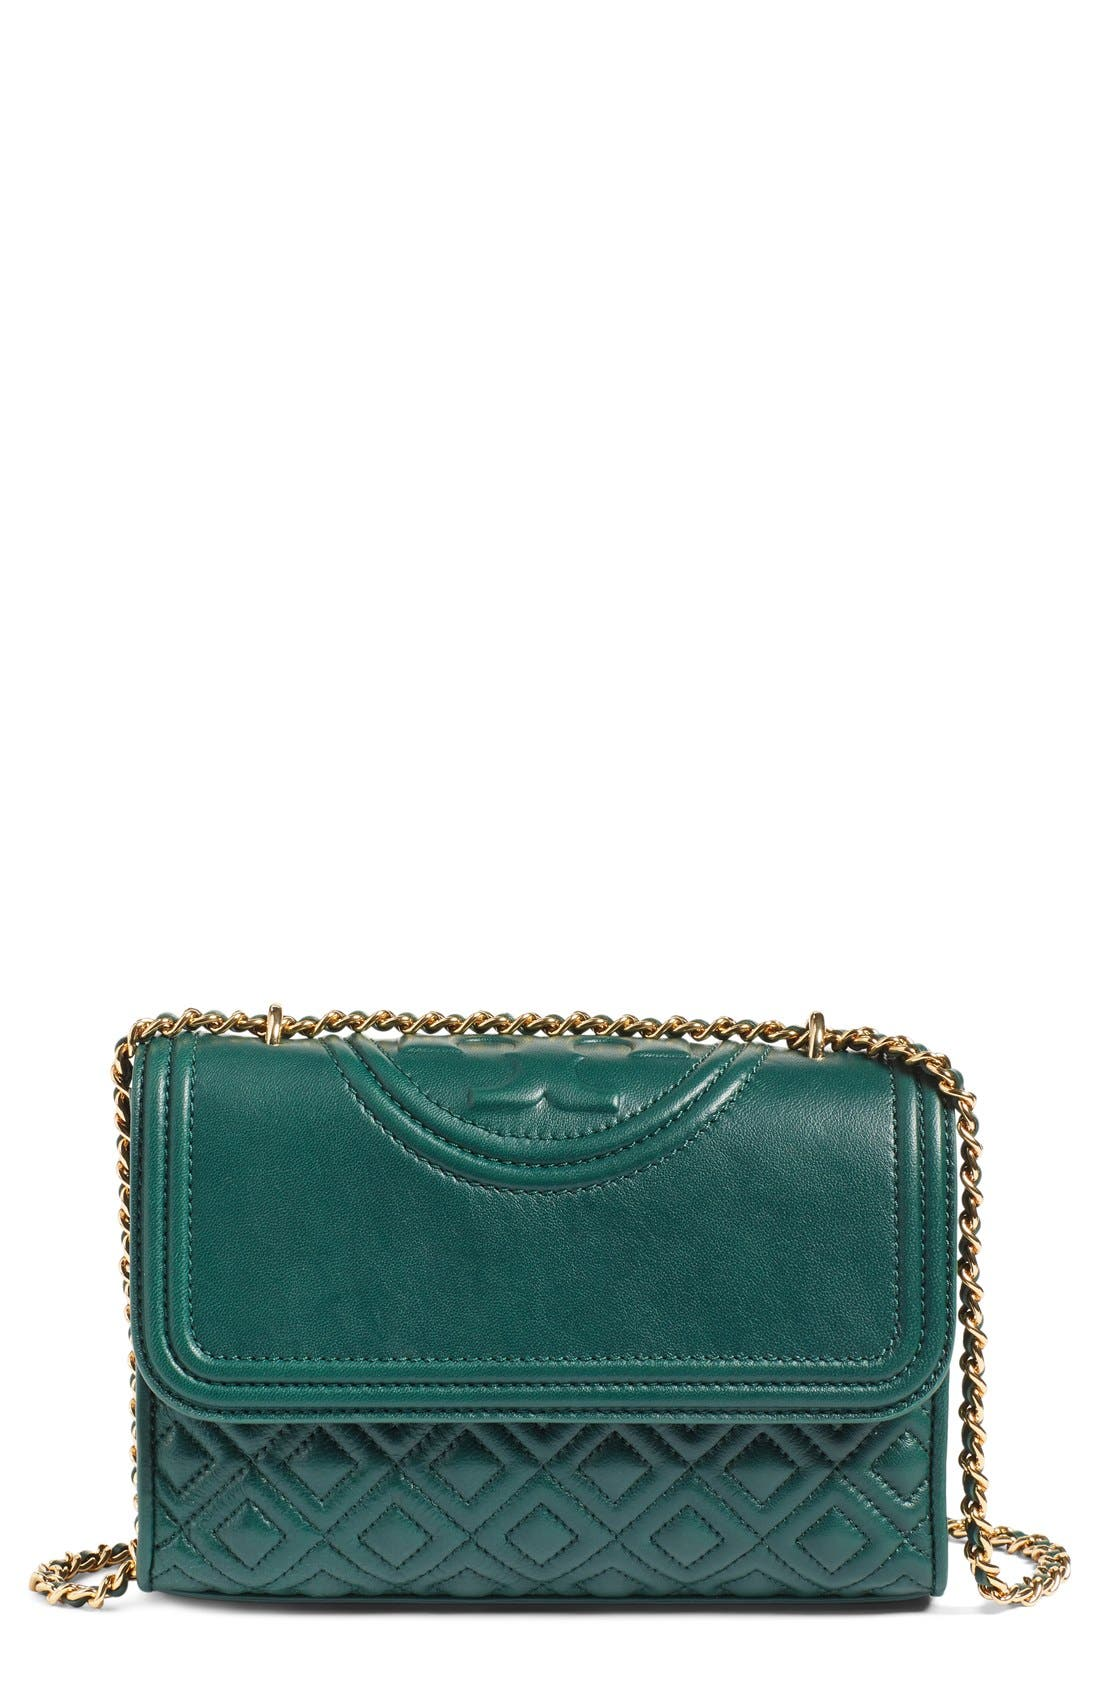 Alternate Image 1 Selected - Tory Burch 'Small Fleming' Quilted Leather Shoulder Bag